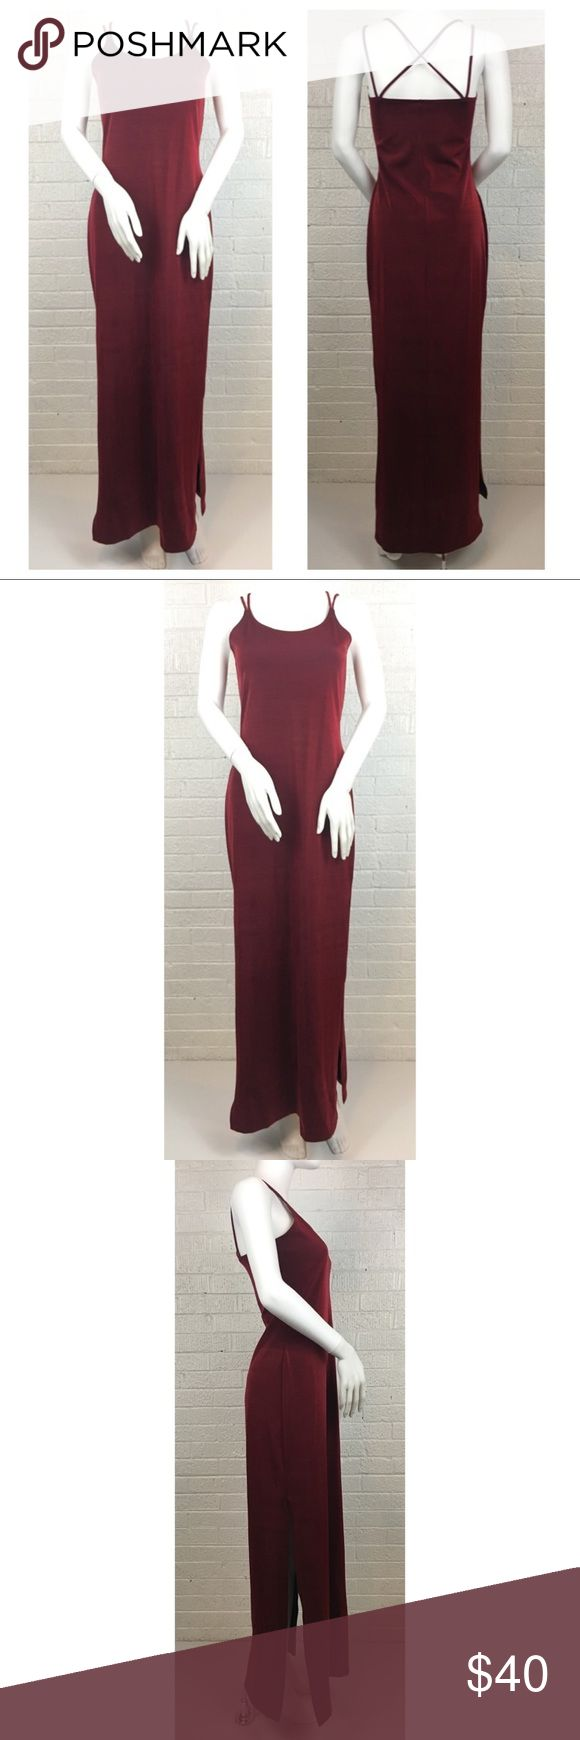 90s burgundy prom dress Formula X Nylon/spandex slim fit spaghetti strap slip style dress with mid length slits on both sides. Juniors size large but runs small, measurements to come. (Mannequin is small) formula x Dresses Prom